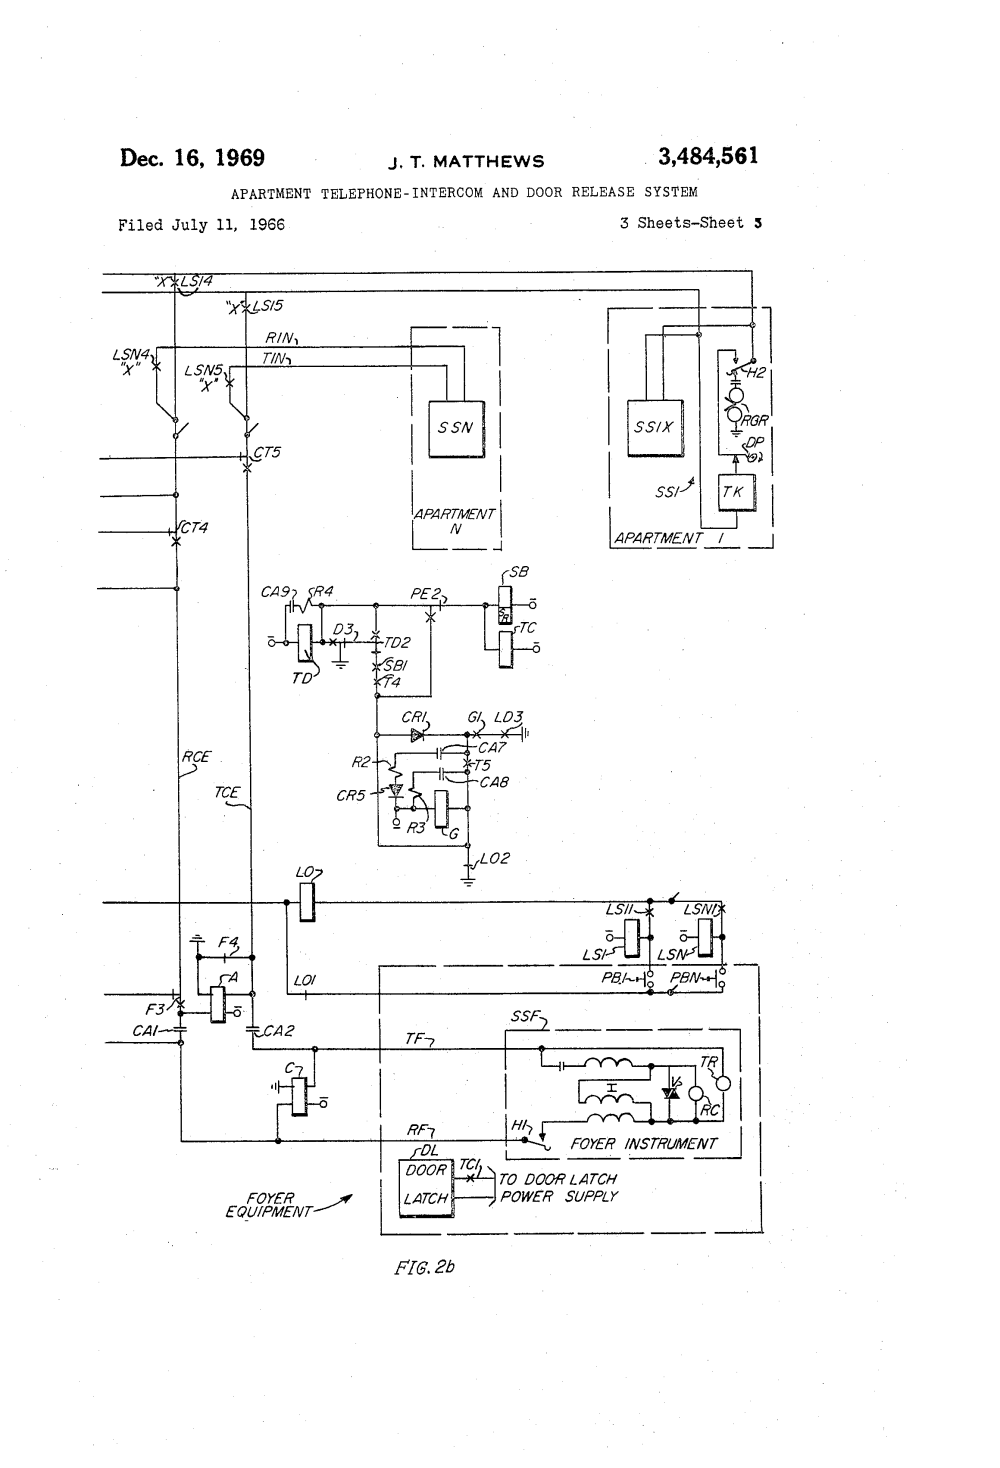 medium resolution of  us3484561 2 patent us3484561 apartment telephone intercom and door release telephone intercom wiring diagram at cita